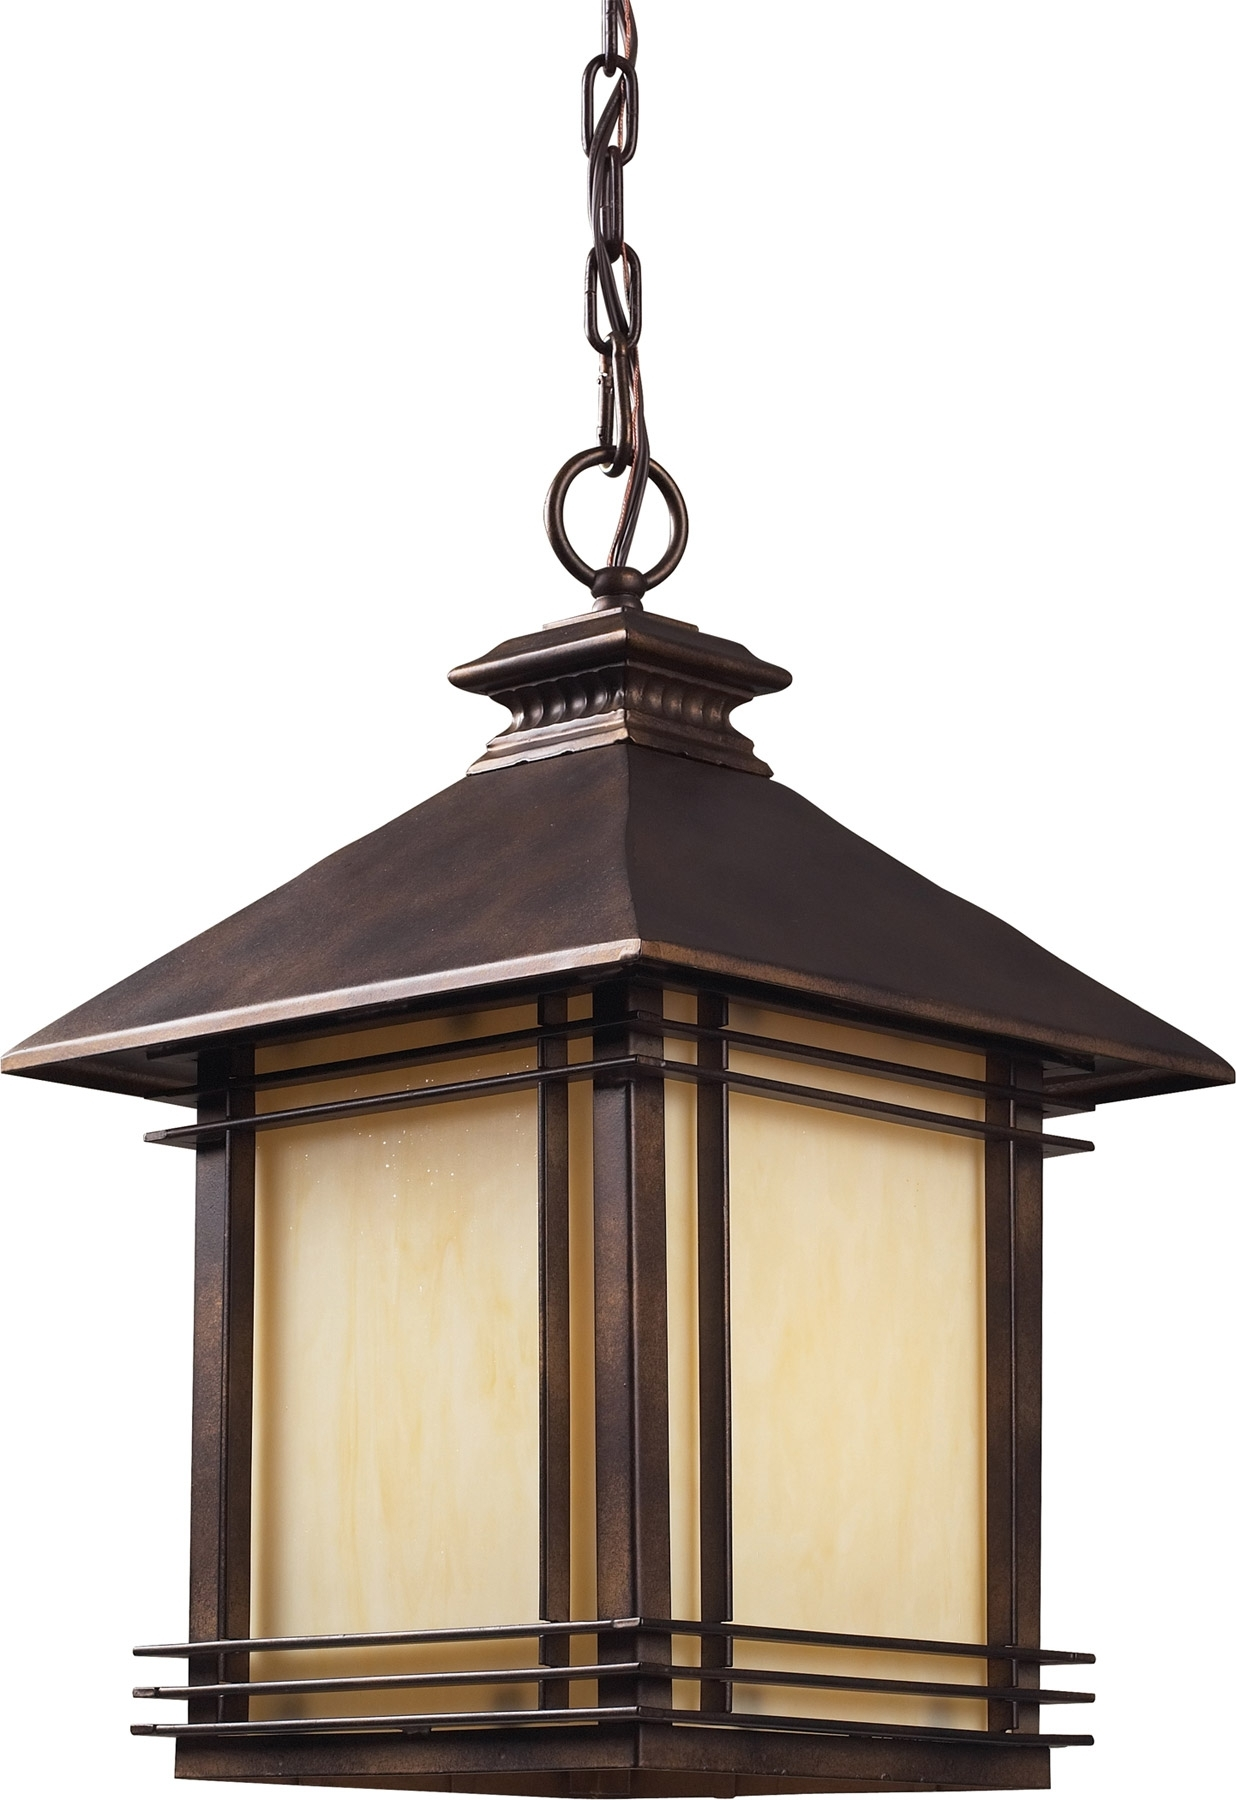 Outdoor Hanging Porch Lanterns – Outdoor Designs In Outdoor Hanging Porch Lights (#9 of 15)